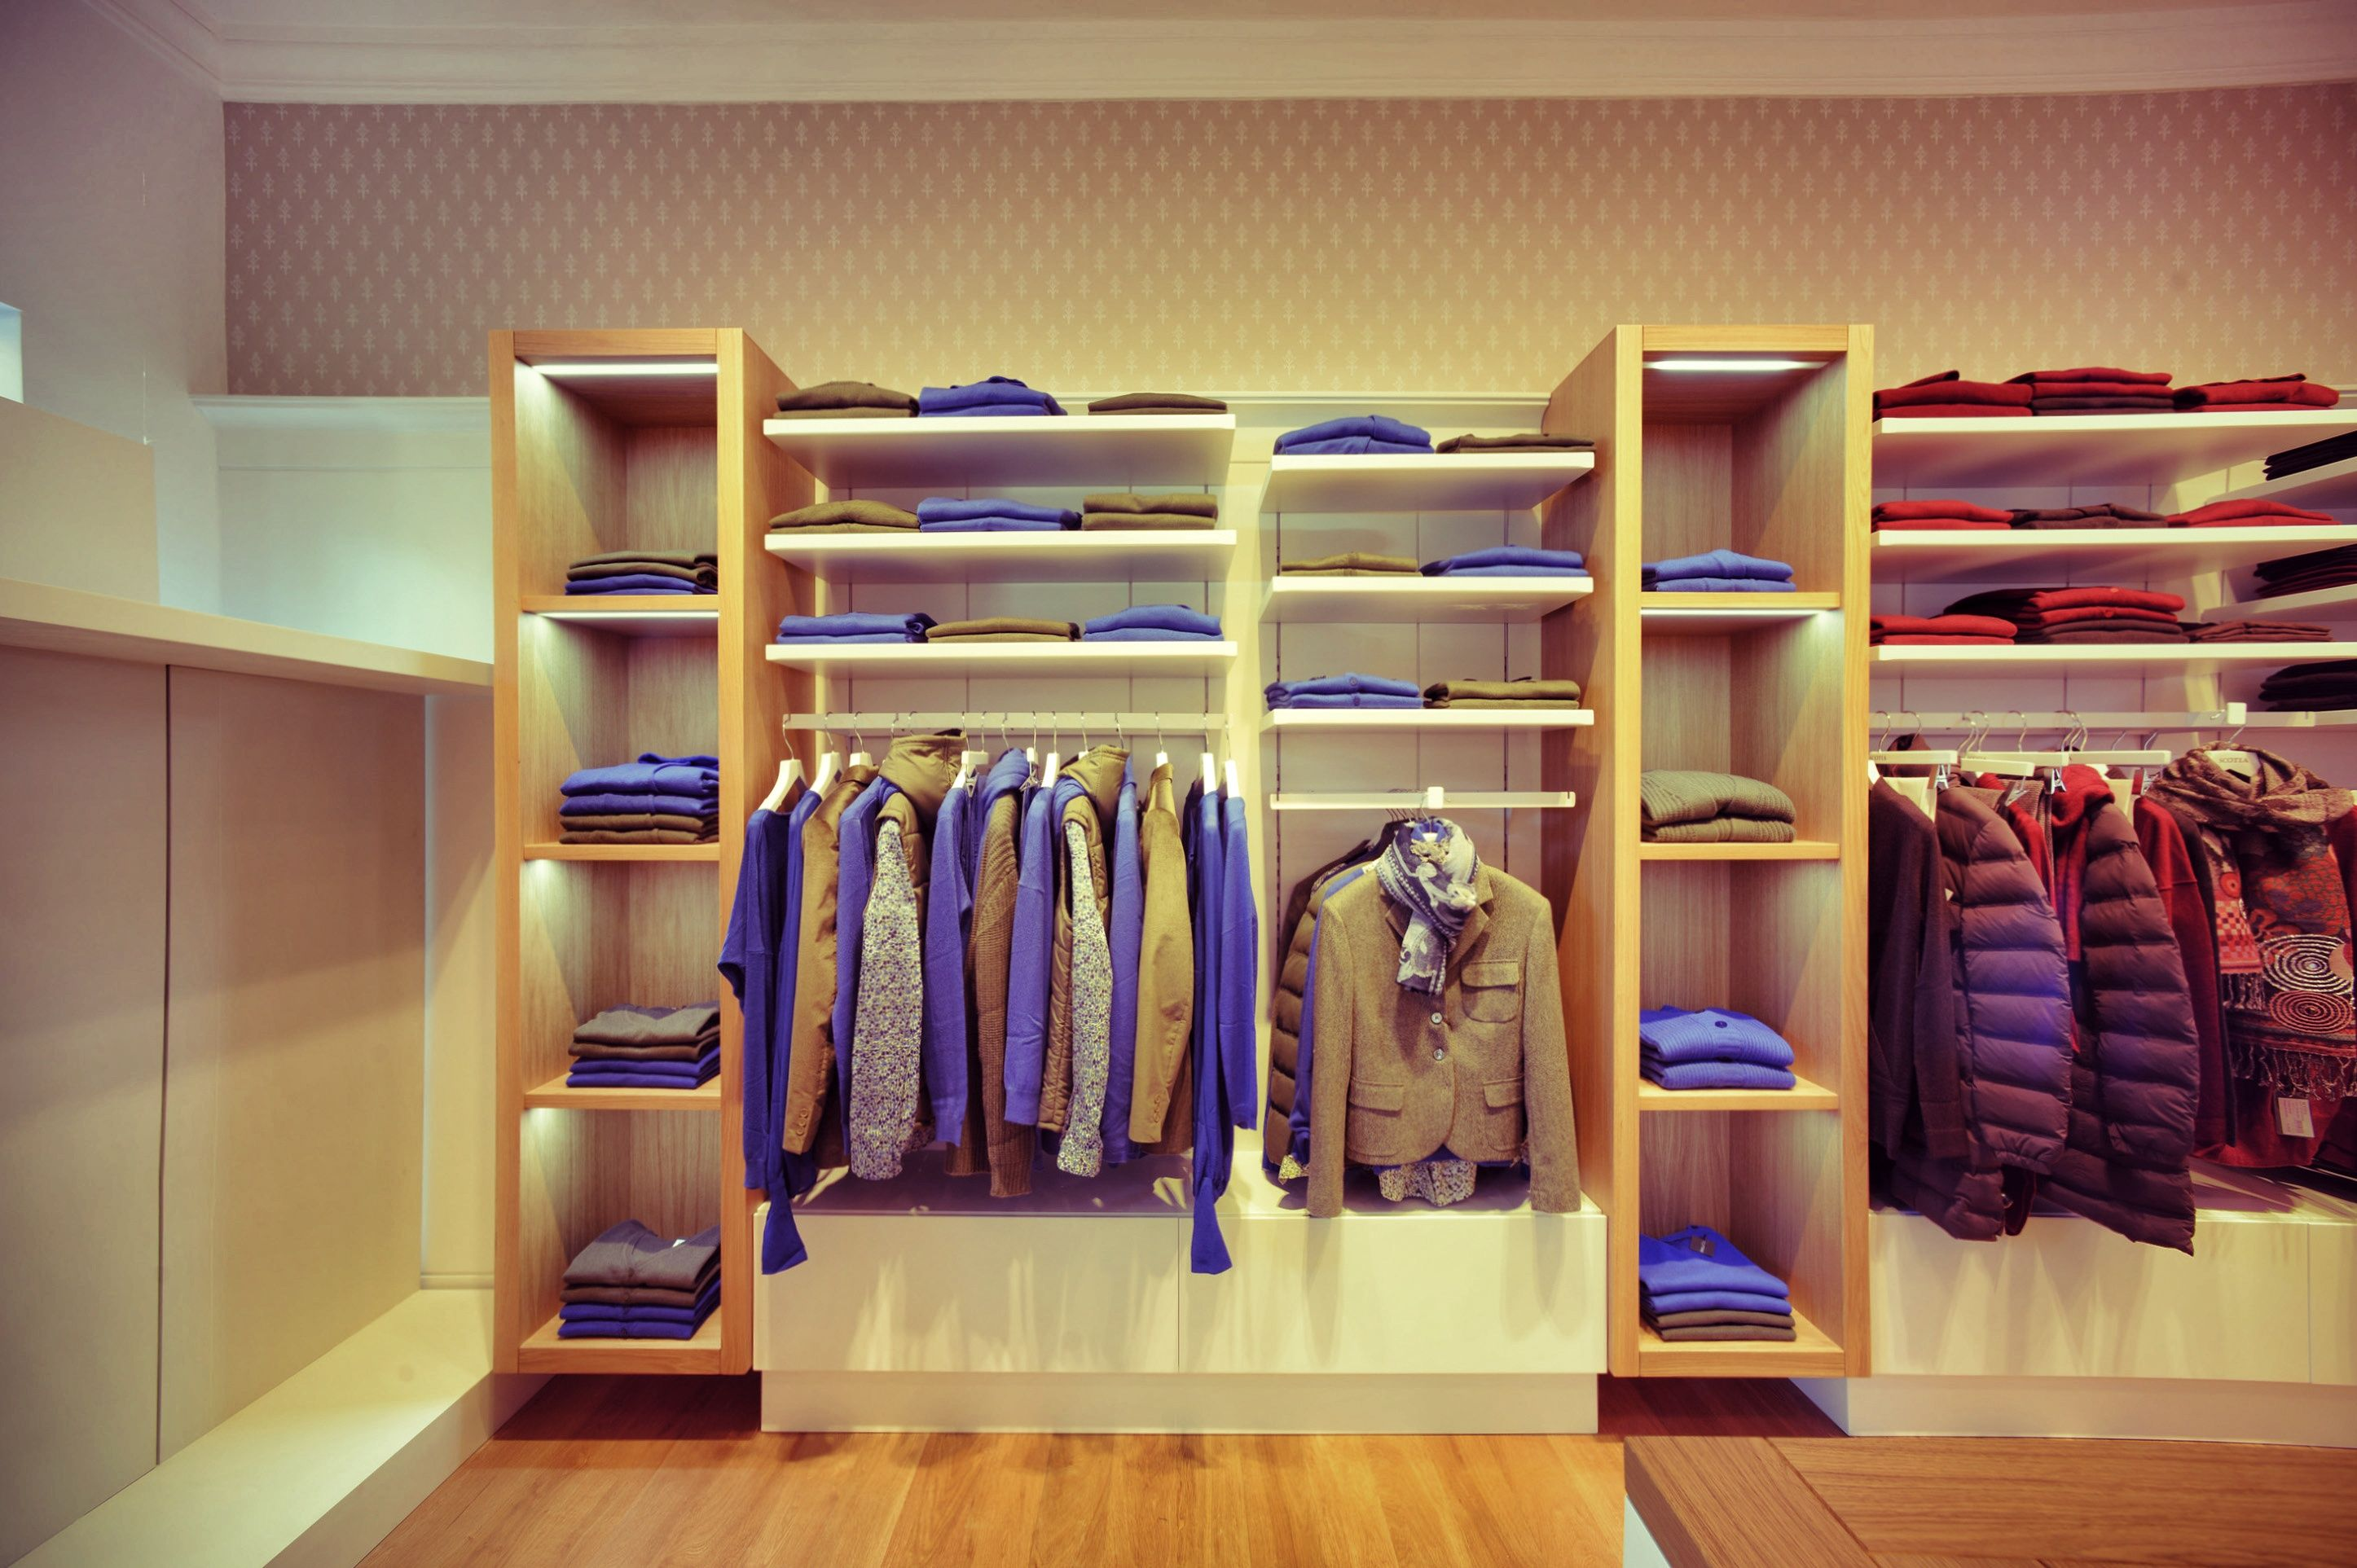 Scotia clothes store interior design umberto menasci for Interior designs of boutique shops